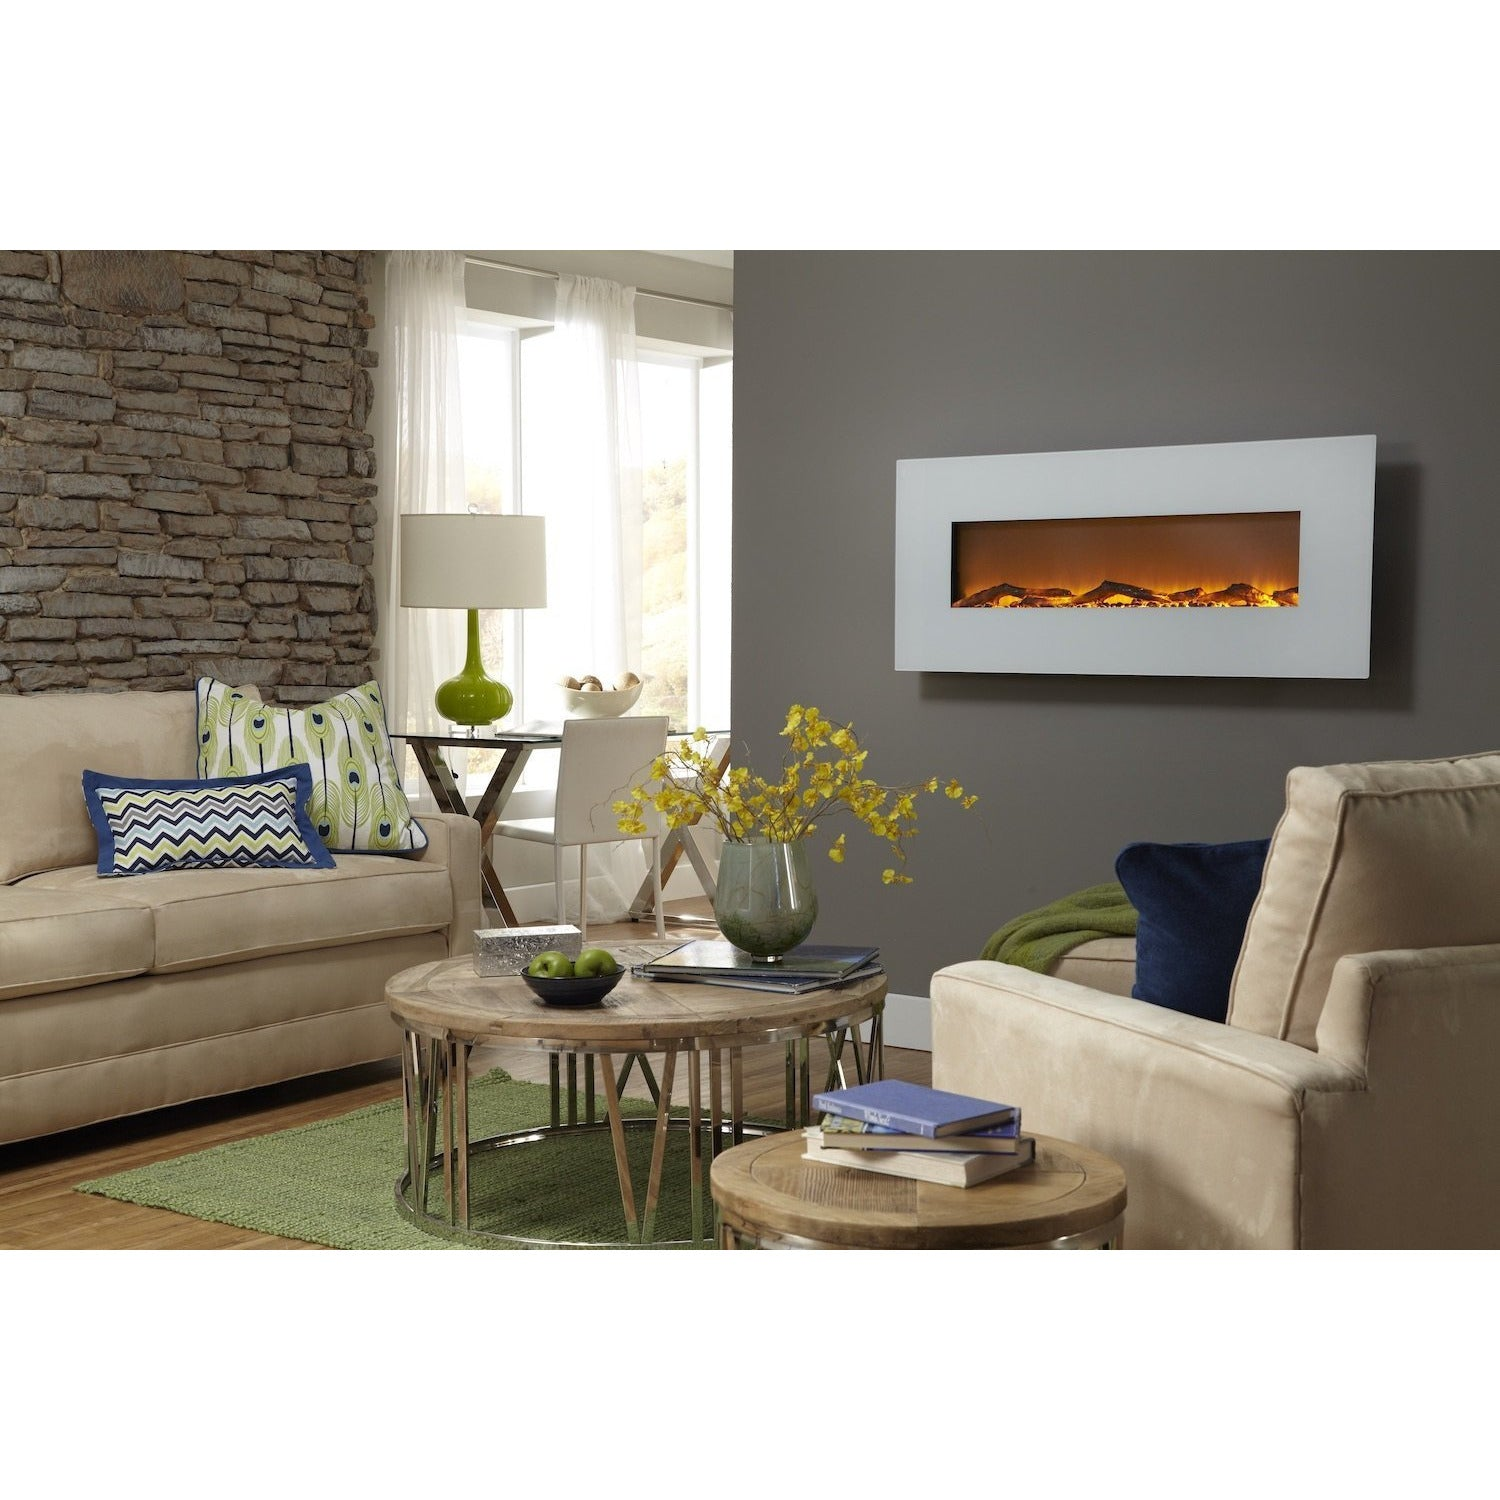 Touchstone Ivory - Wall Mounted Electric Fireplace with White Frame (#80002)